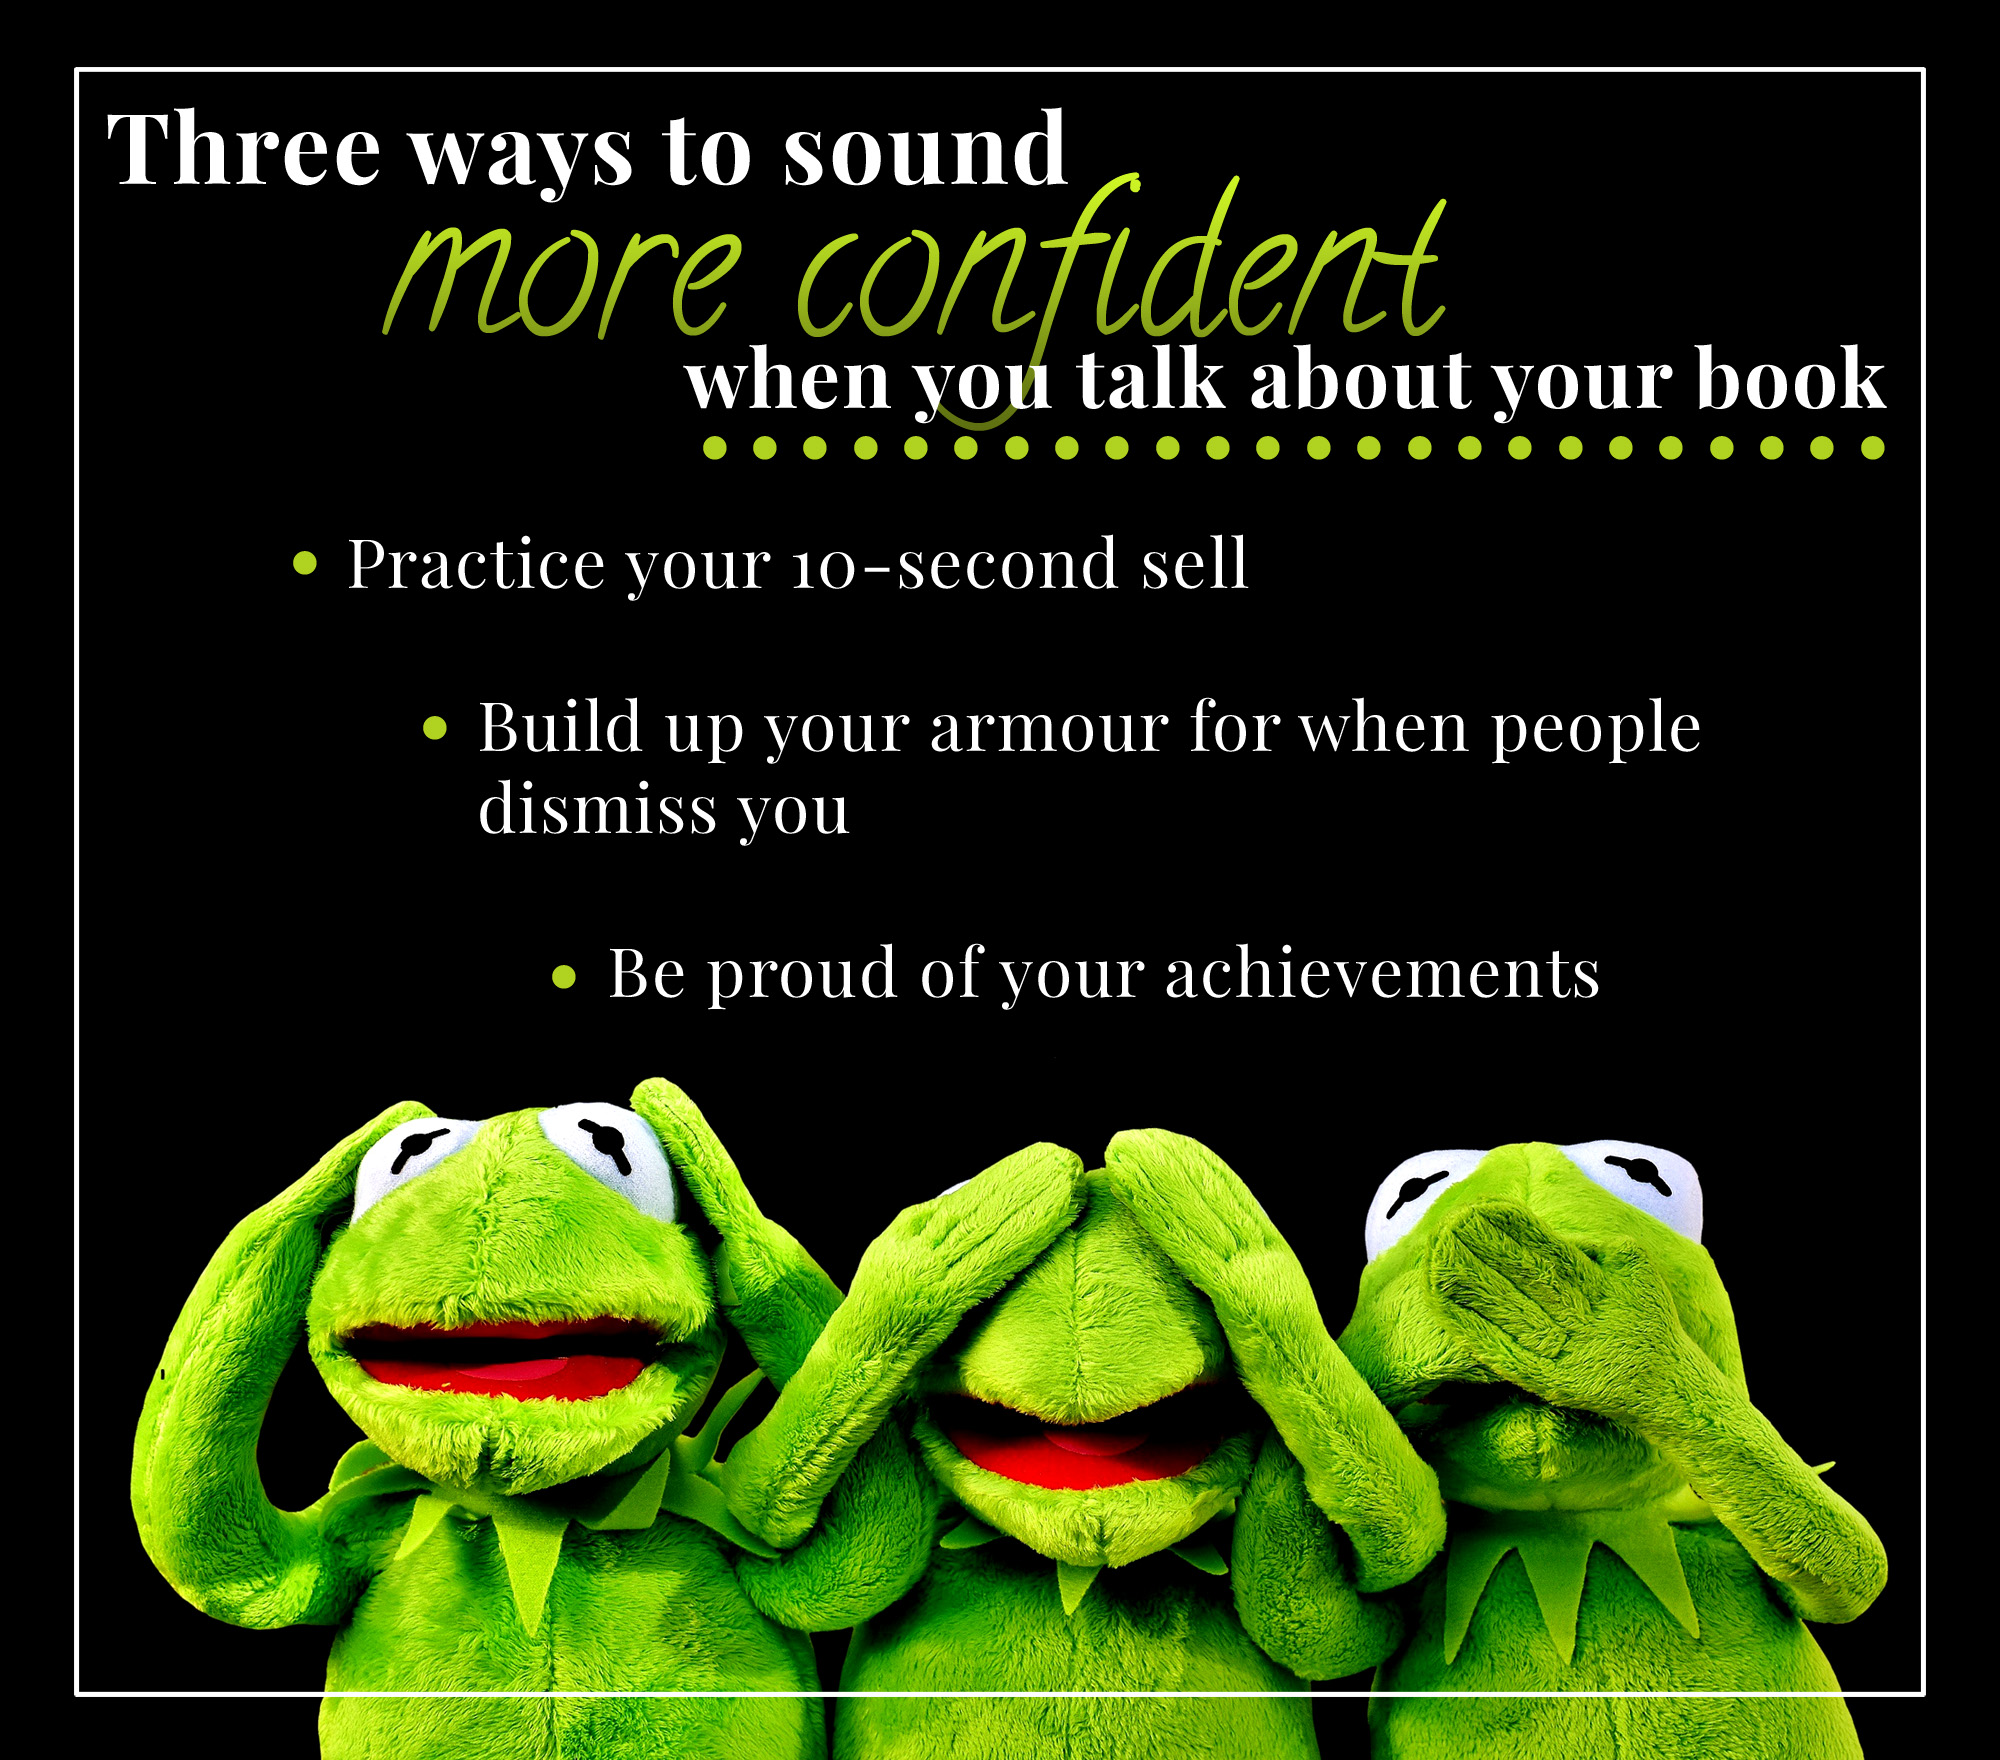 3 ways to sound more confident when you talk about your book